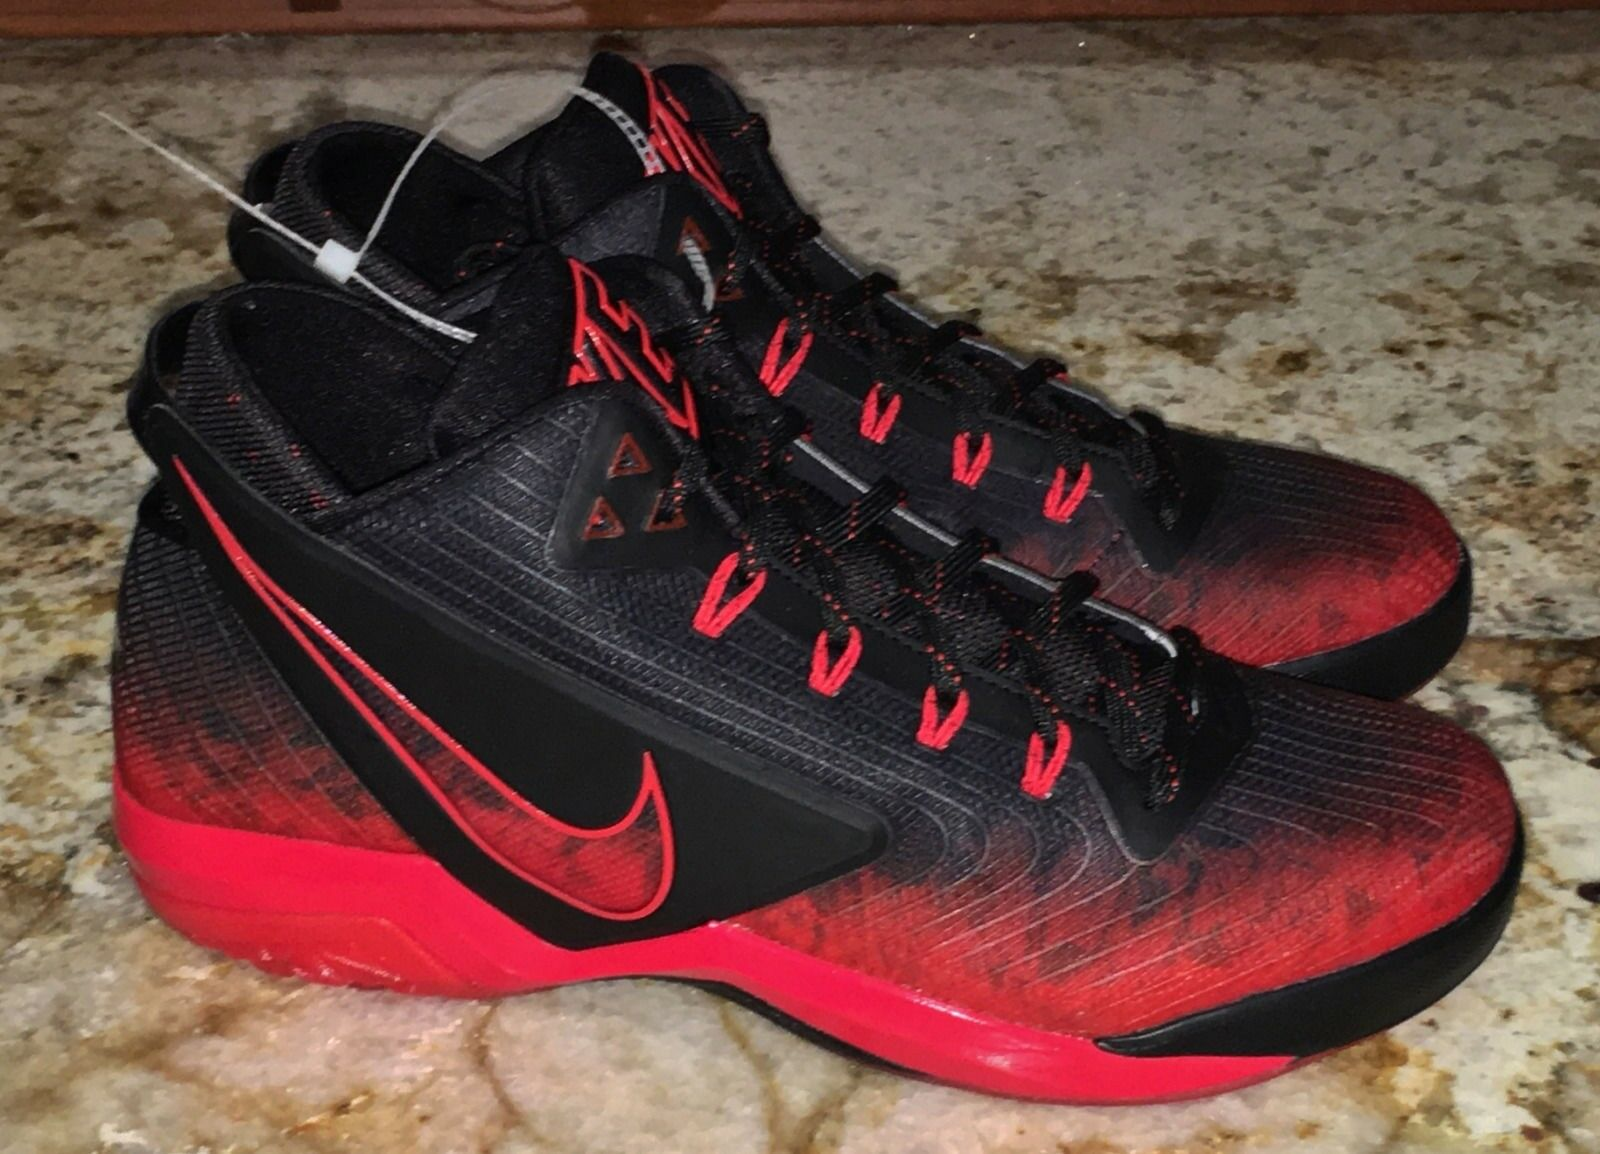 NIKE Field General Football Black Red Silver Training shoes NEW Mens Sz 10.5